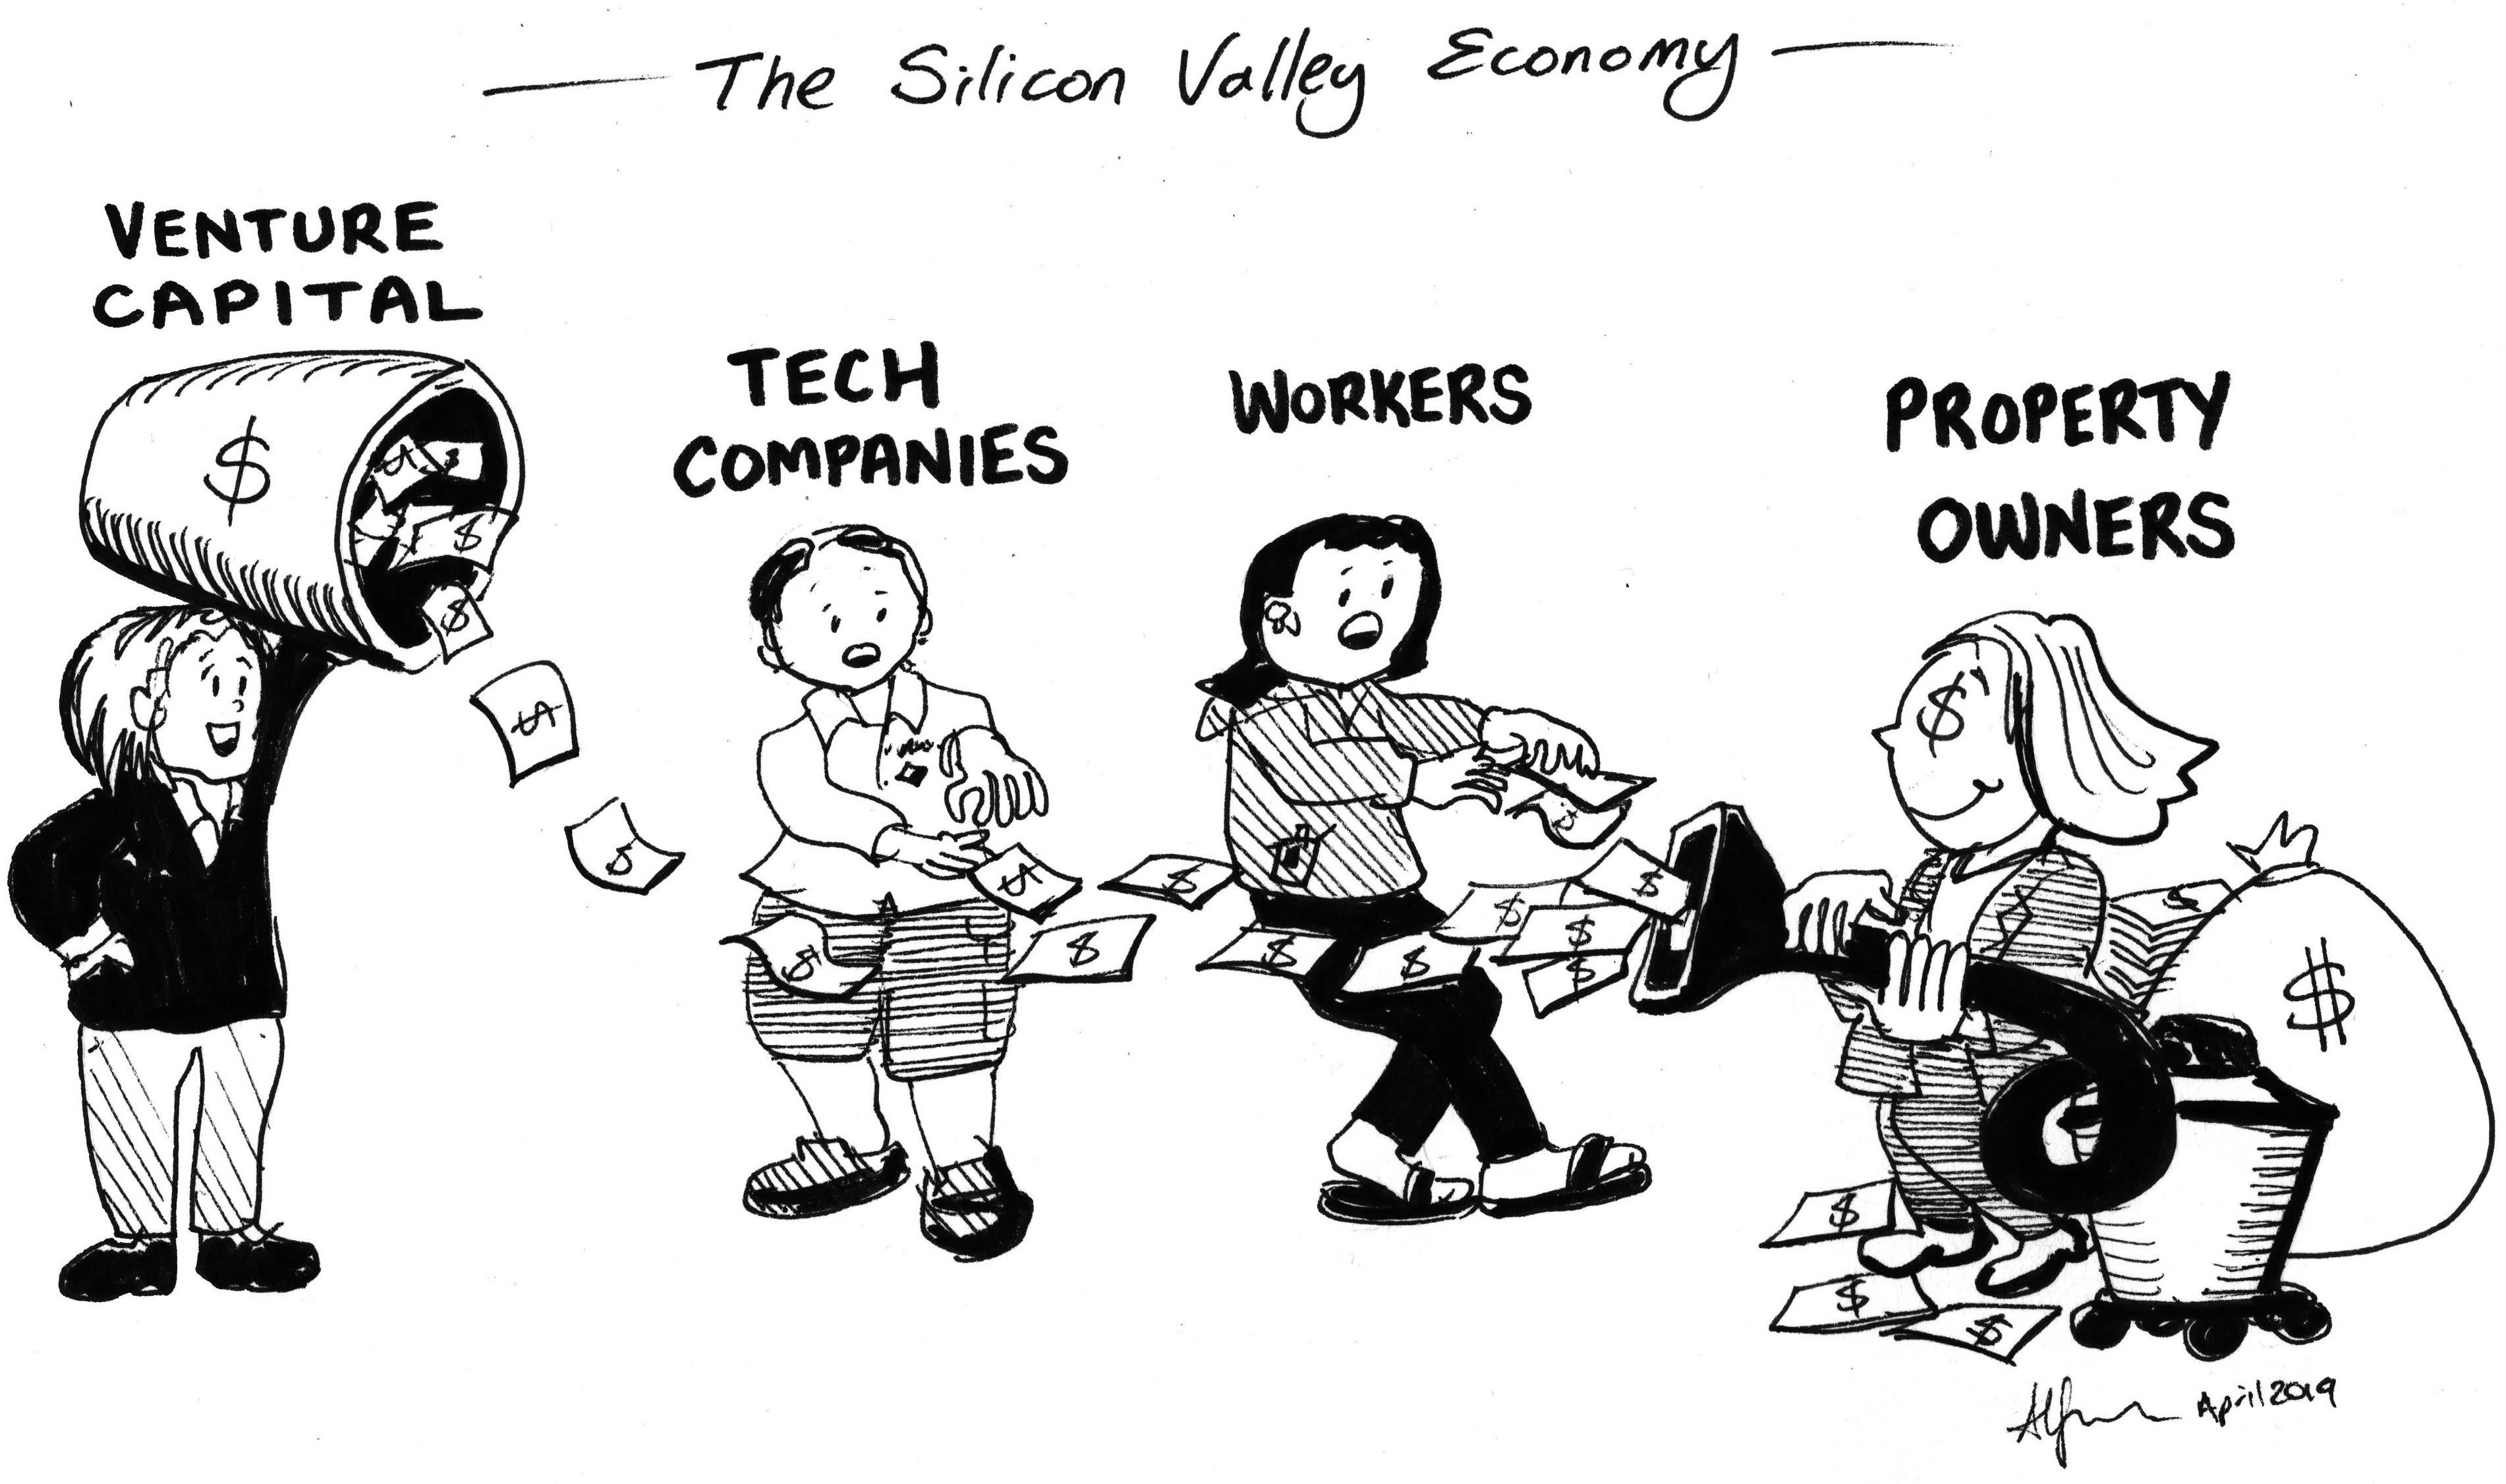 Venture capital by humorpoint on Perfect Cartoons in 2020